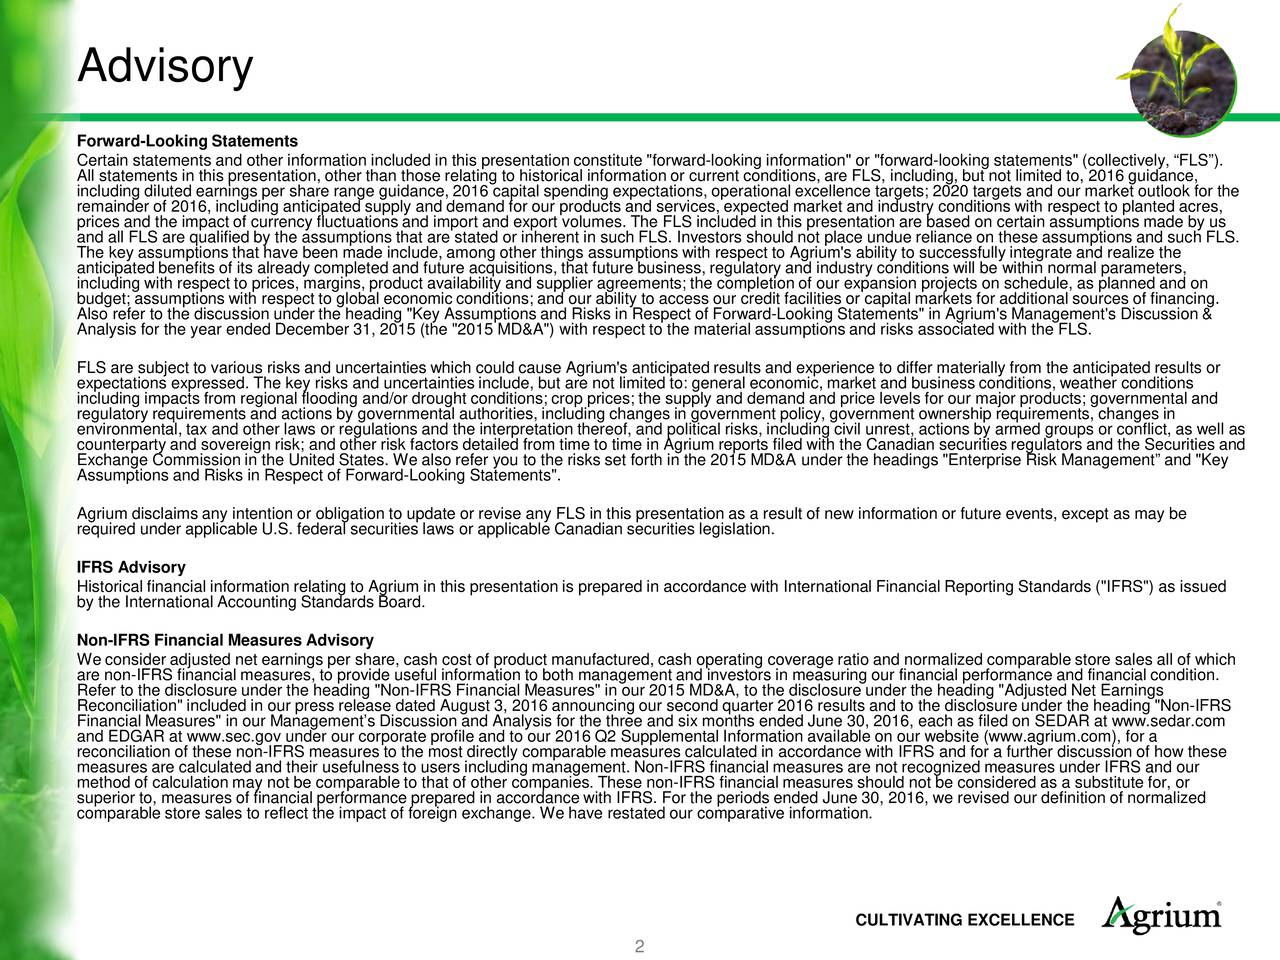 """Forward-Looking Statements Certain statements and other information included in this presentation constitute """"forward-looking information"""" or """"forward-looking statements"""" (collectively, FLS). All statements in this presentation, other than those relating to historical information or current conditions, are FLS, including, but not limited to, 2016 guidance, including diluted earnings per share range guidance, 2016 capital spending expectations, operational excellence targets; 2020 targets and our market outlook for the prices and the impact of currency fluctuations and import and export volumes. The FLS included in this presentation are based on certain assumptions made by us, and all FLS are qualified by the assumptions that are stated or inherent in such FLS. Investors should not place undue reliance on these assumptions and such FLS. The key assumptions that have been made include, among other things assumptions with respect to Agrium's ability to successfully integrate and realize the anticipated benefits of its already completed and future acquisitions, that future business, regulatory and industry conditions will be within normal parameters, including with respect to prices, margins, product availability and supplier agreements; the completion of our expansion projects on schedule, as planned and on budget; assumptions with respect to global economic conditions; and our ability to access our credit facilities or capital markets for additional sources of financing. Also refer to the discussion under the heading """"Key Assumptions and Risks in Respect of Forward-Looking Statements"""" in Agrium's Management's Discussion & Analysis for the year ended December 31, 2015 (the """"2015 MD&A"""") with respect to the material assumptions and risks associated with the FLS. FLS are subject to various risks and uncertainties which could cause Agrium's anticipated results and experience to differ materially from the anticipated results or expectations expressed. The key risks and unce"""